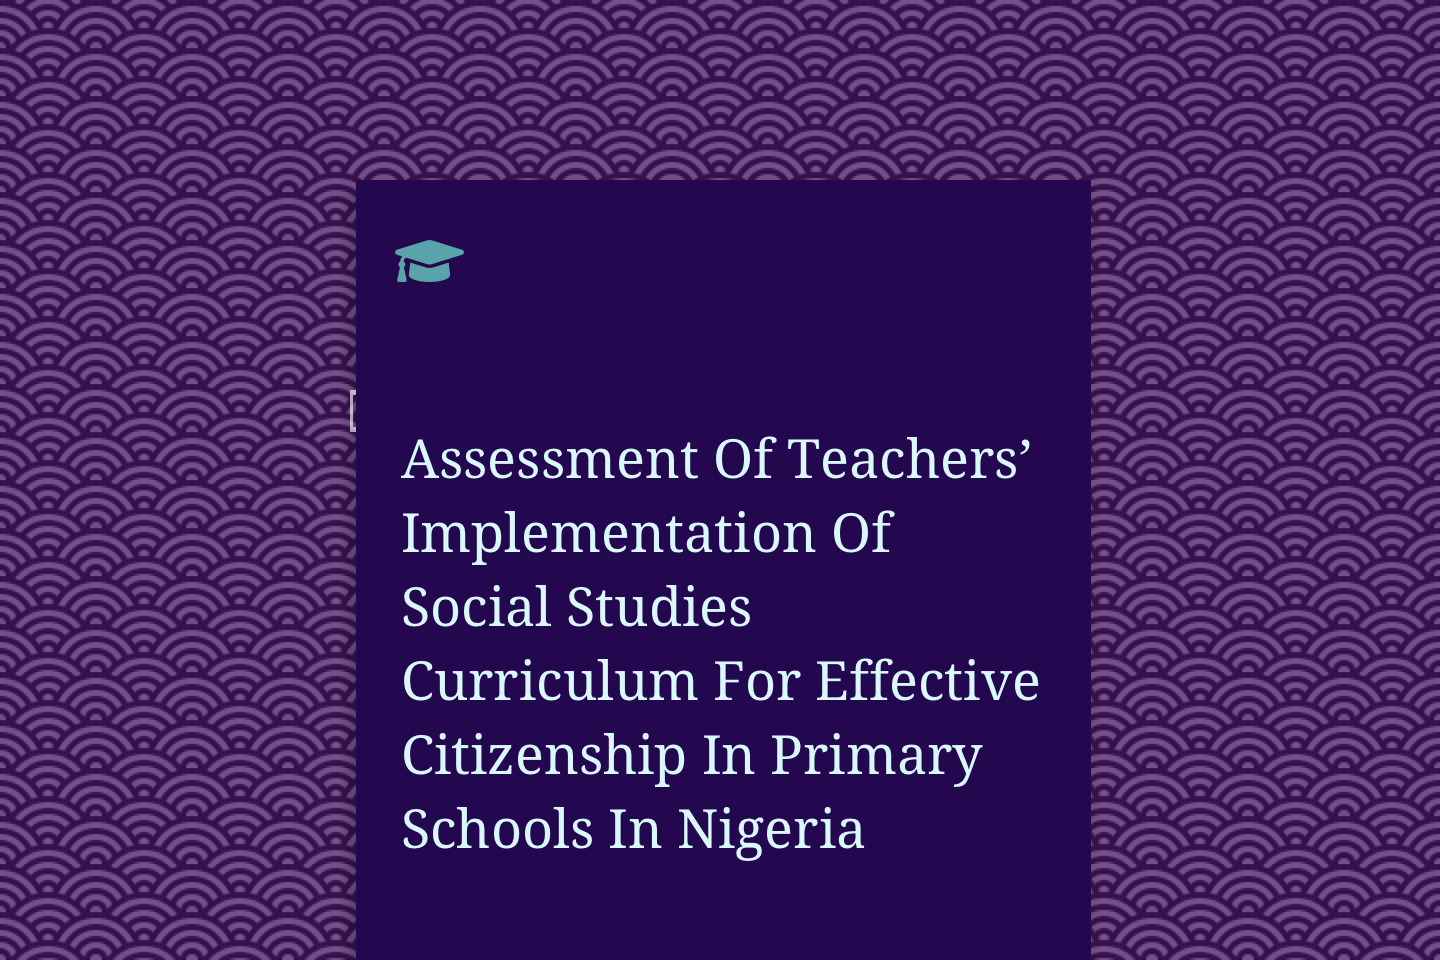 Assessment Of Teachers' Implementation Of Social Studies Curriculum For Effective Citizenship In Primary Schools In Nigeria